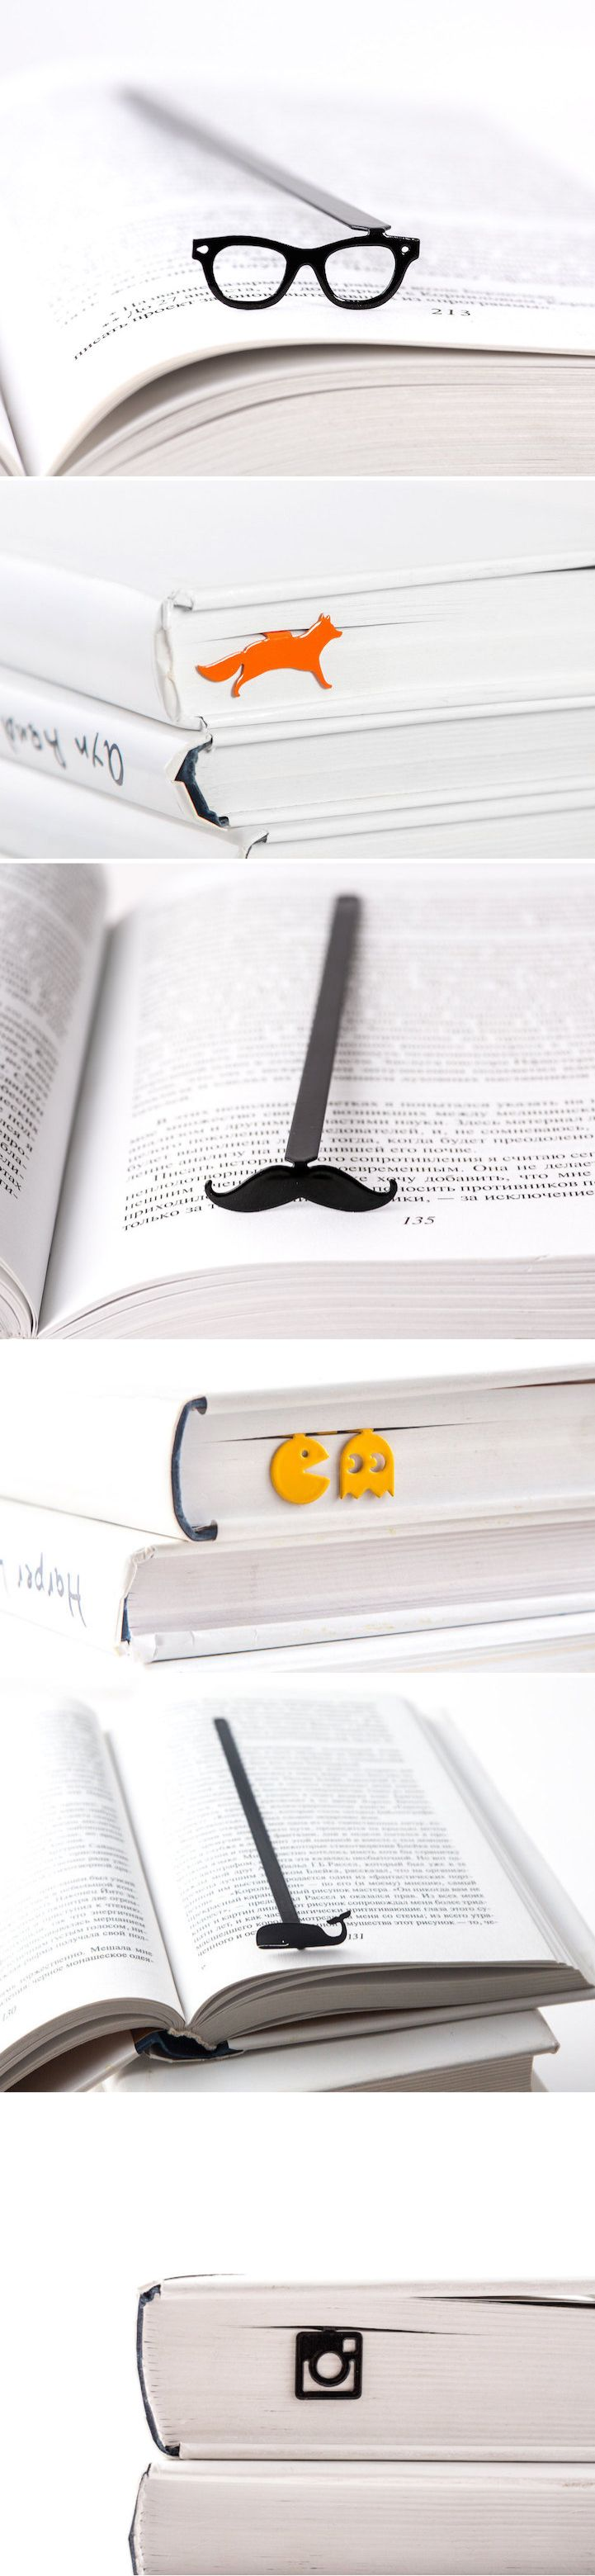 Quirky Laser-Cut Bookmarks Cap the Pages of Books with Playful Icons